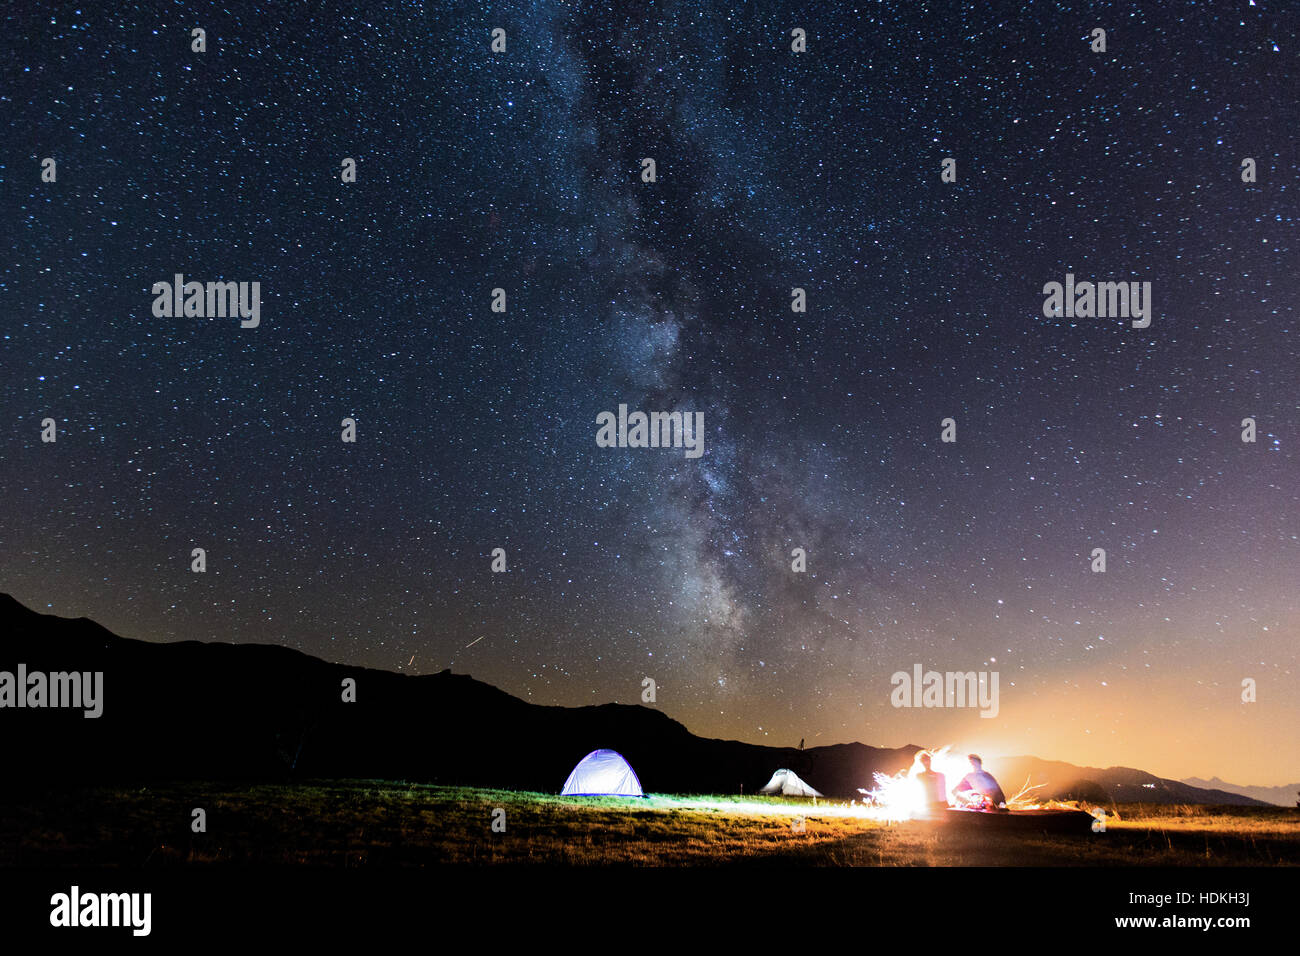 Milky Way. Night sky with stars and silhouette of two man around a fire - Stock Image